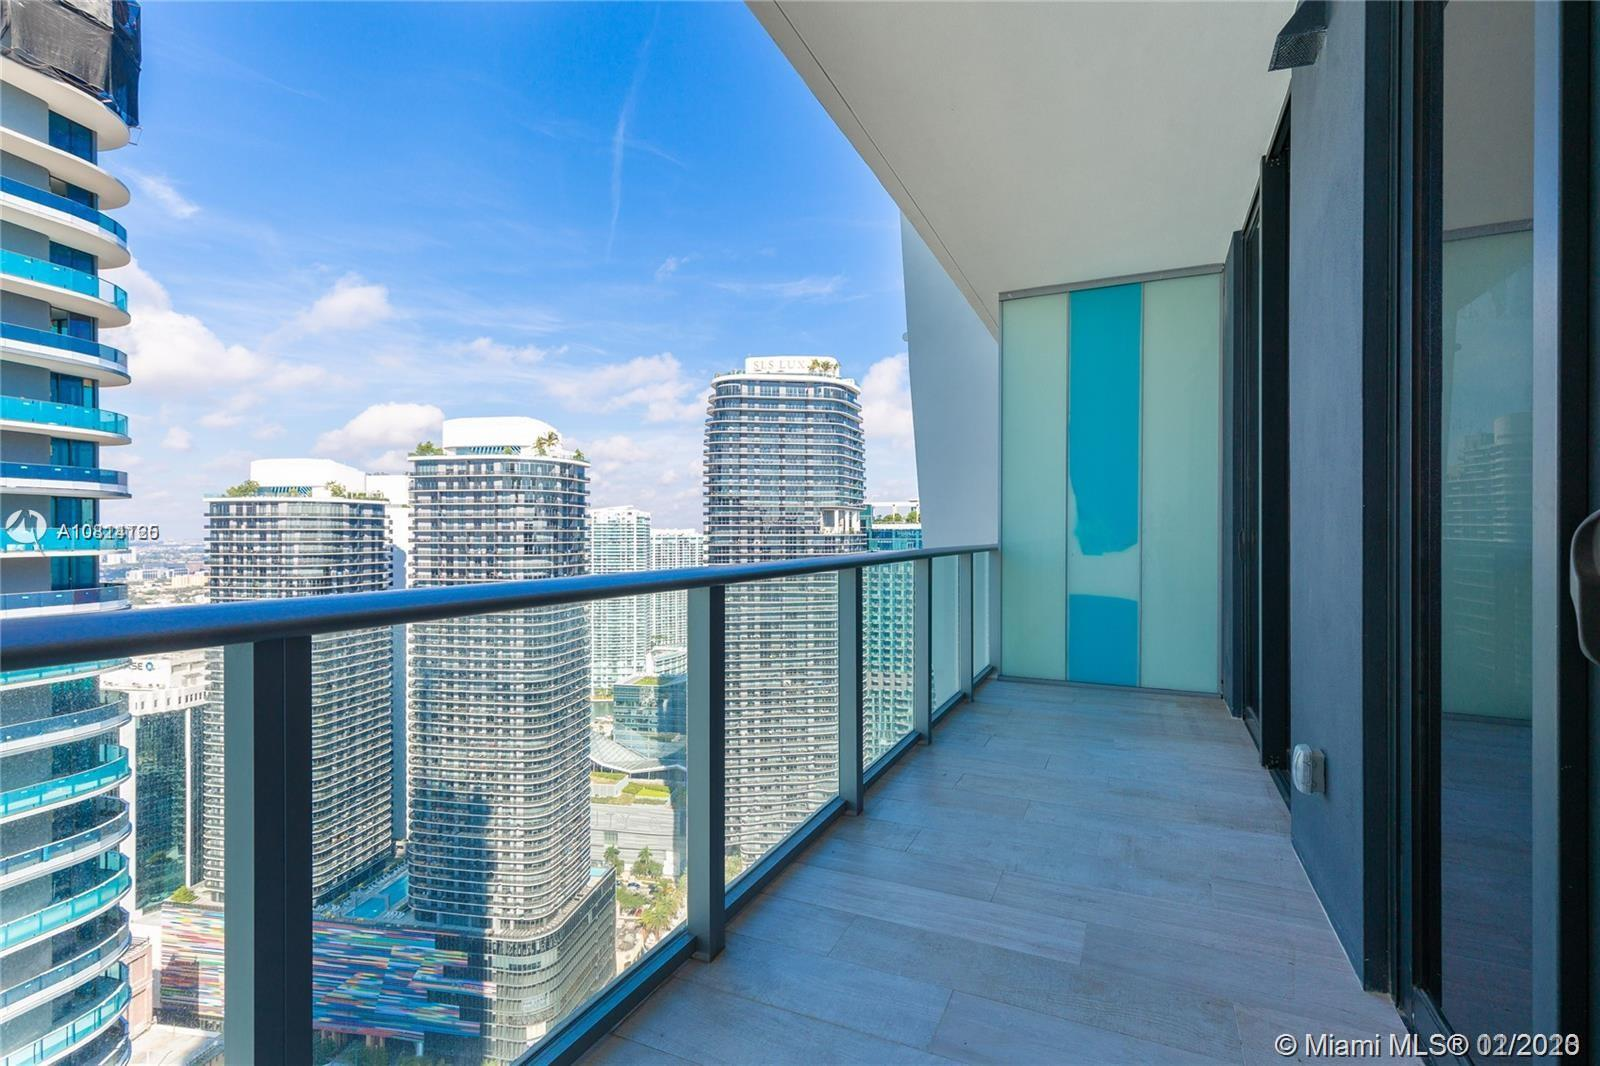 "Amazing 1 Bedroom 1.5 Bathrooms unit located at 1010 Brickell, an iconic 50-story tower with glass façade and curvilinear profile. Unit feature open-concept floor plan for entertaining and efficiency, expansive private balcony with glass railings, fantastic views of West of the city, 9-foot ceiling heights and floor-to-ceiling windows. European kitchen cabinetry, top of the line Smeg appliances and under-cabinet lighting for maximum visibility and intimate evening ambiance. Unparalleled amenities attractive to adults and children alike, which include: state-of-the-art gym, basketball court, two story private club, indoor pool, pool on the top floor of the building ""50th floor"", kids and teenagers room, spa facility and treatment room and sauna"